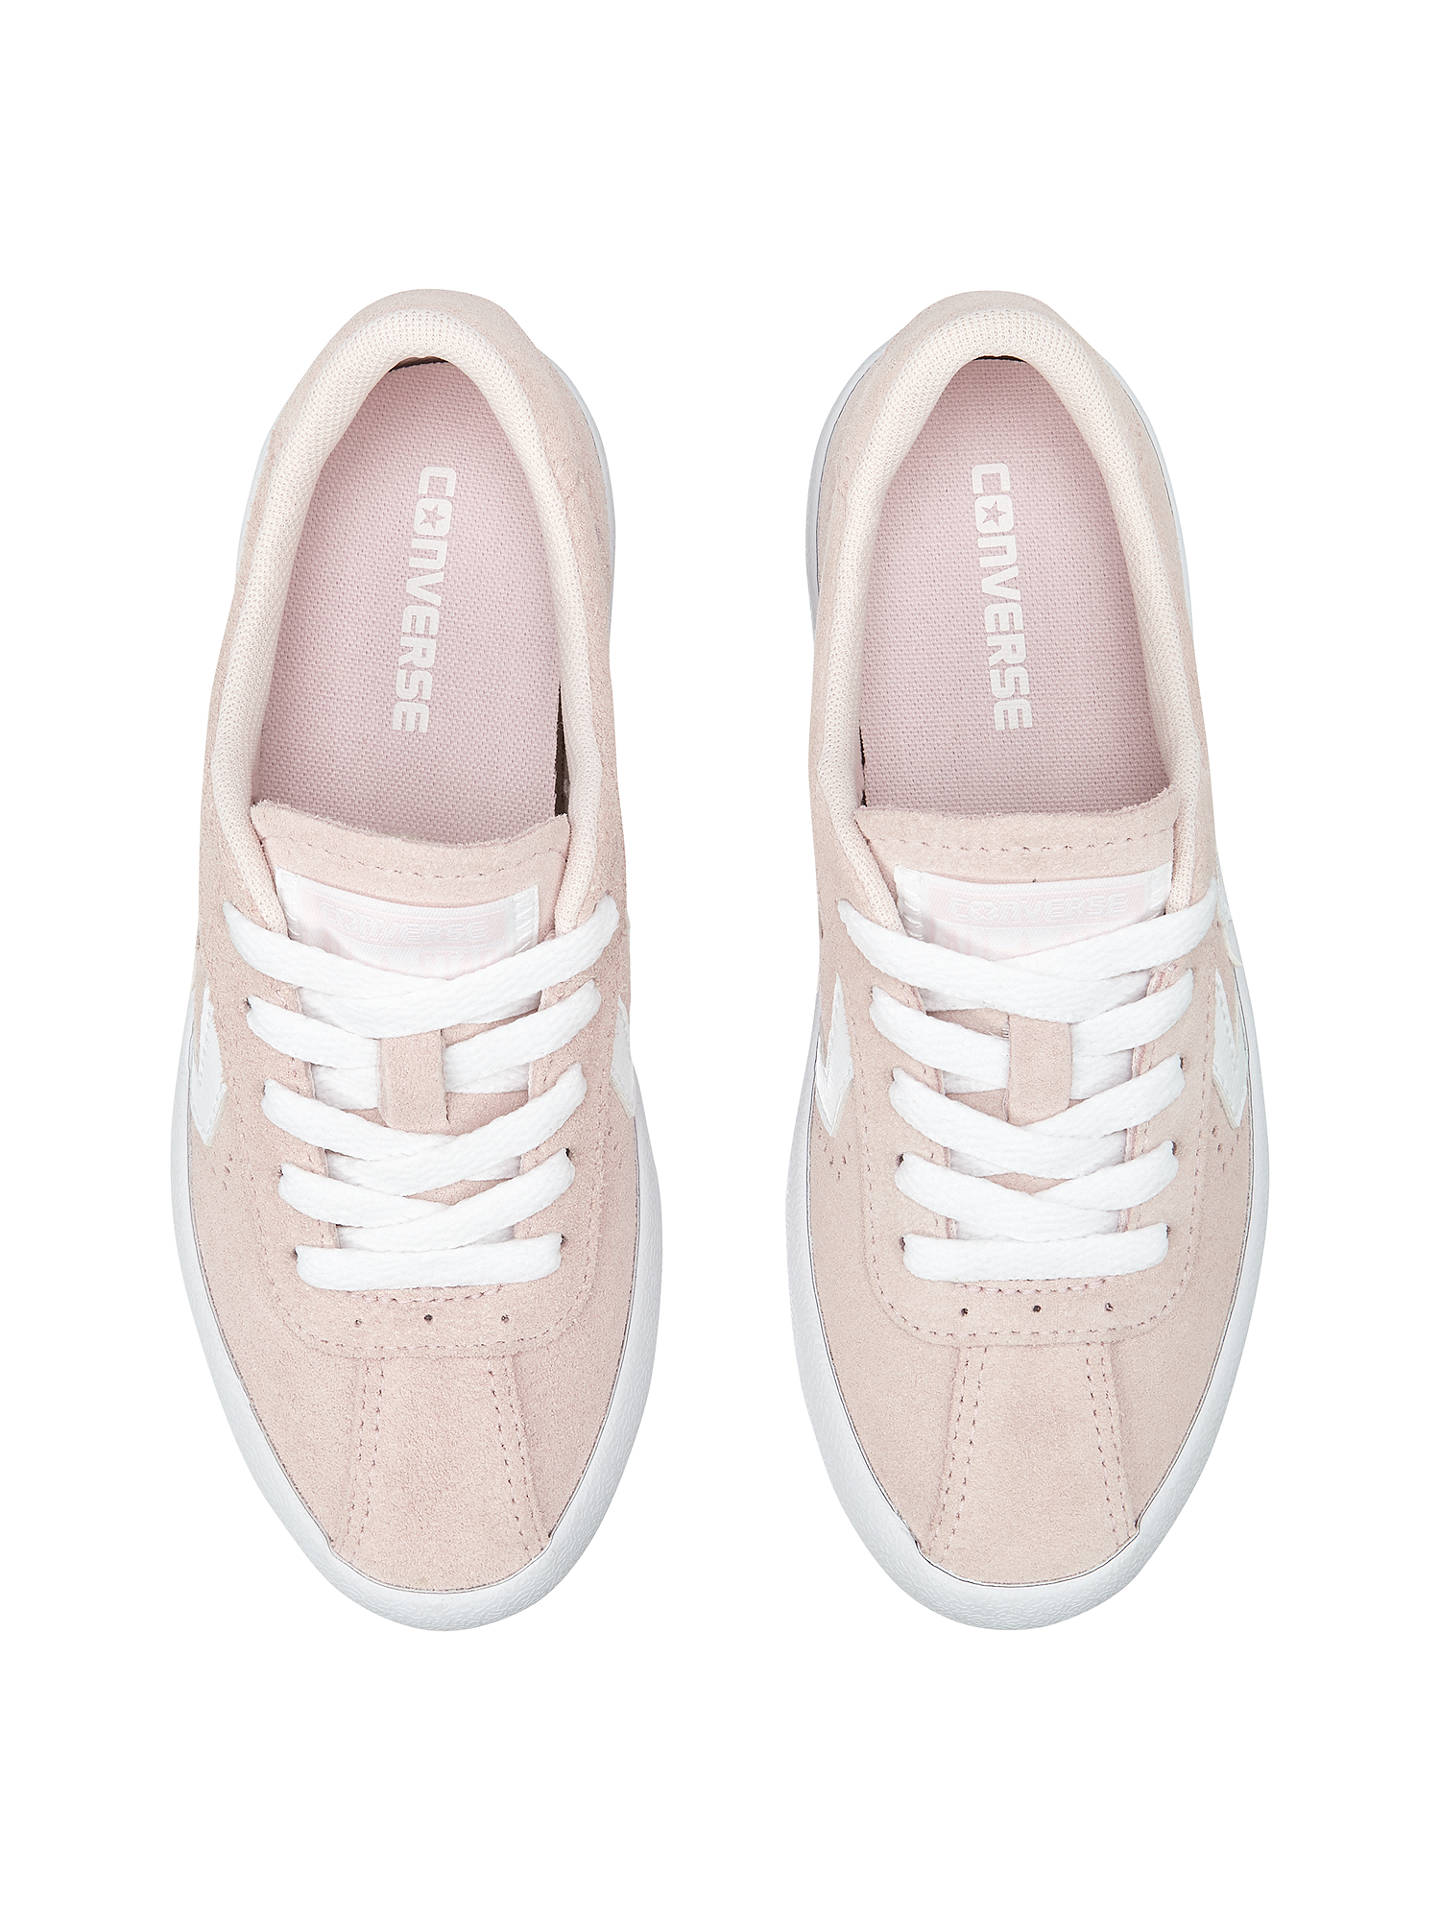 01084ab55e96 ... Buy Converse Breakpoint Trainers